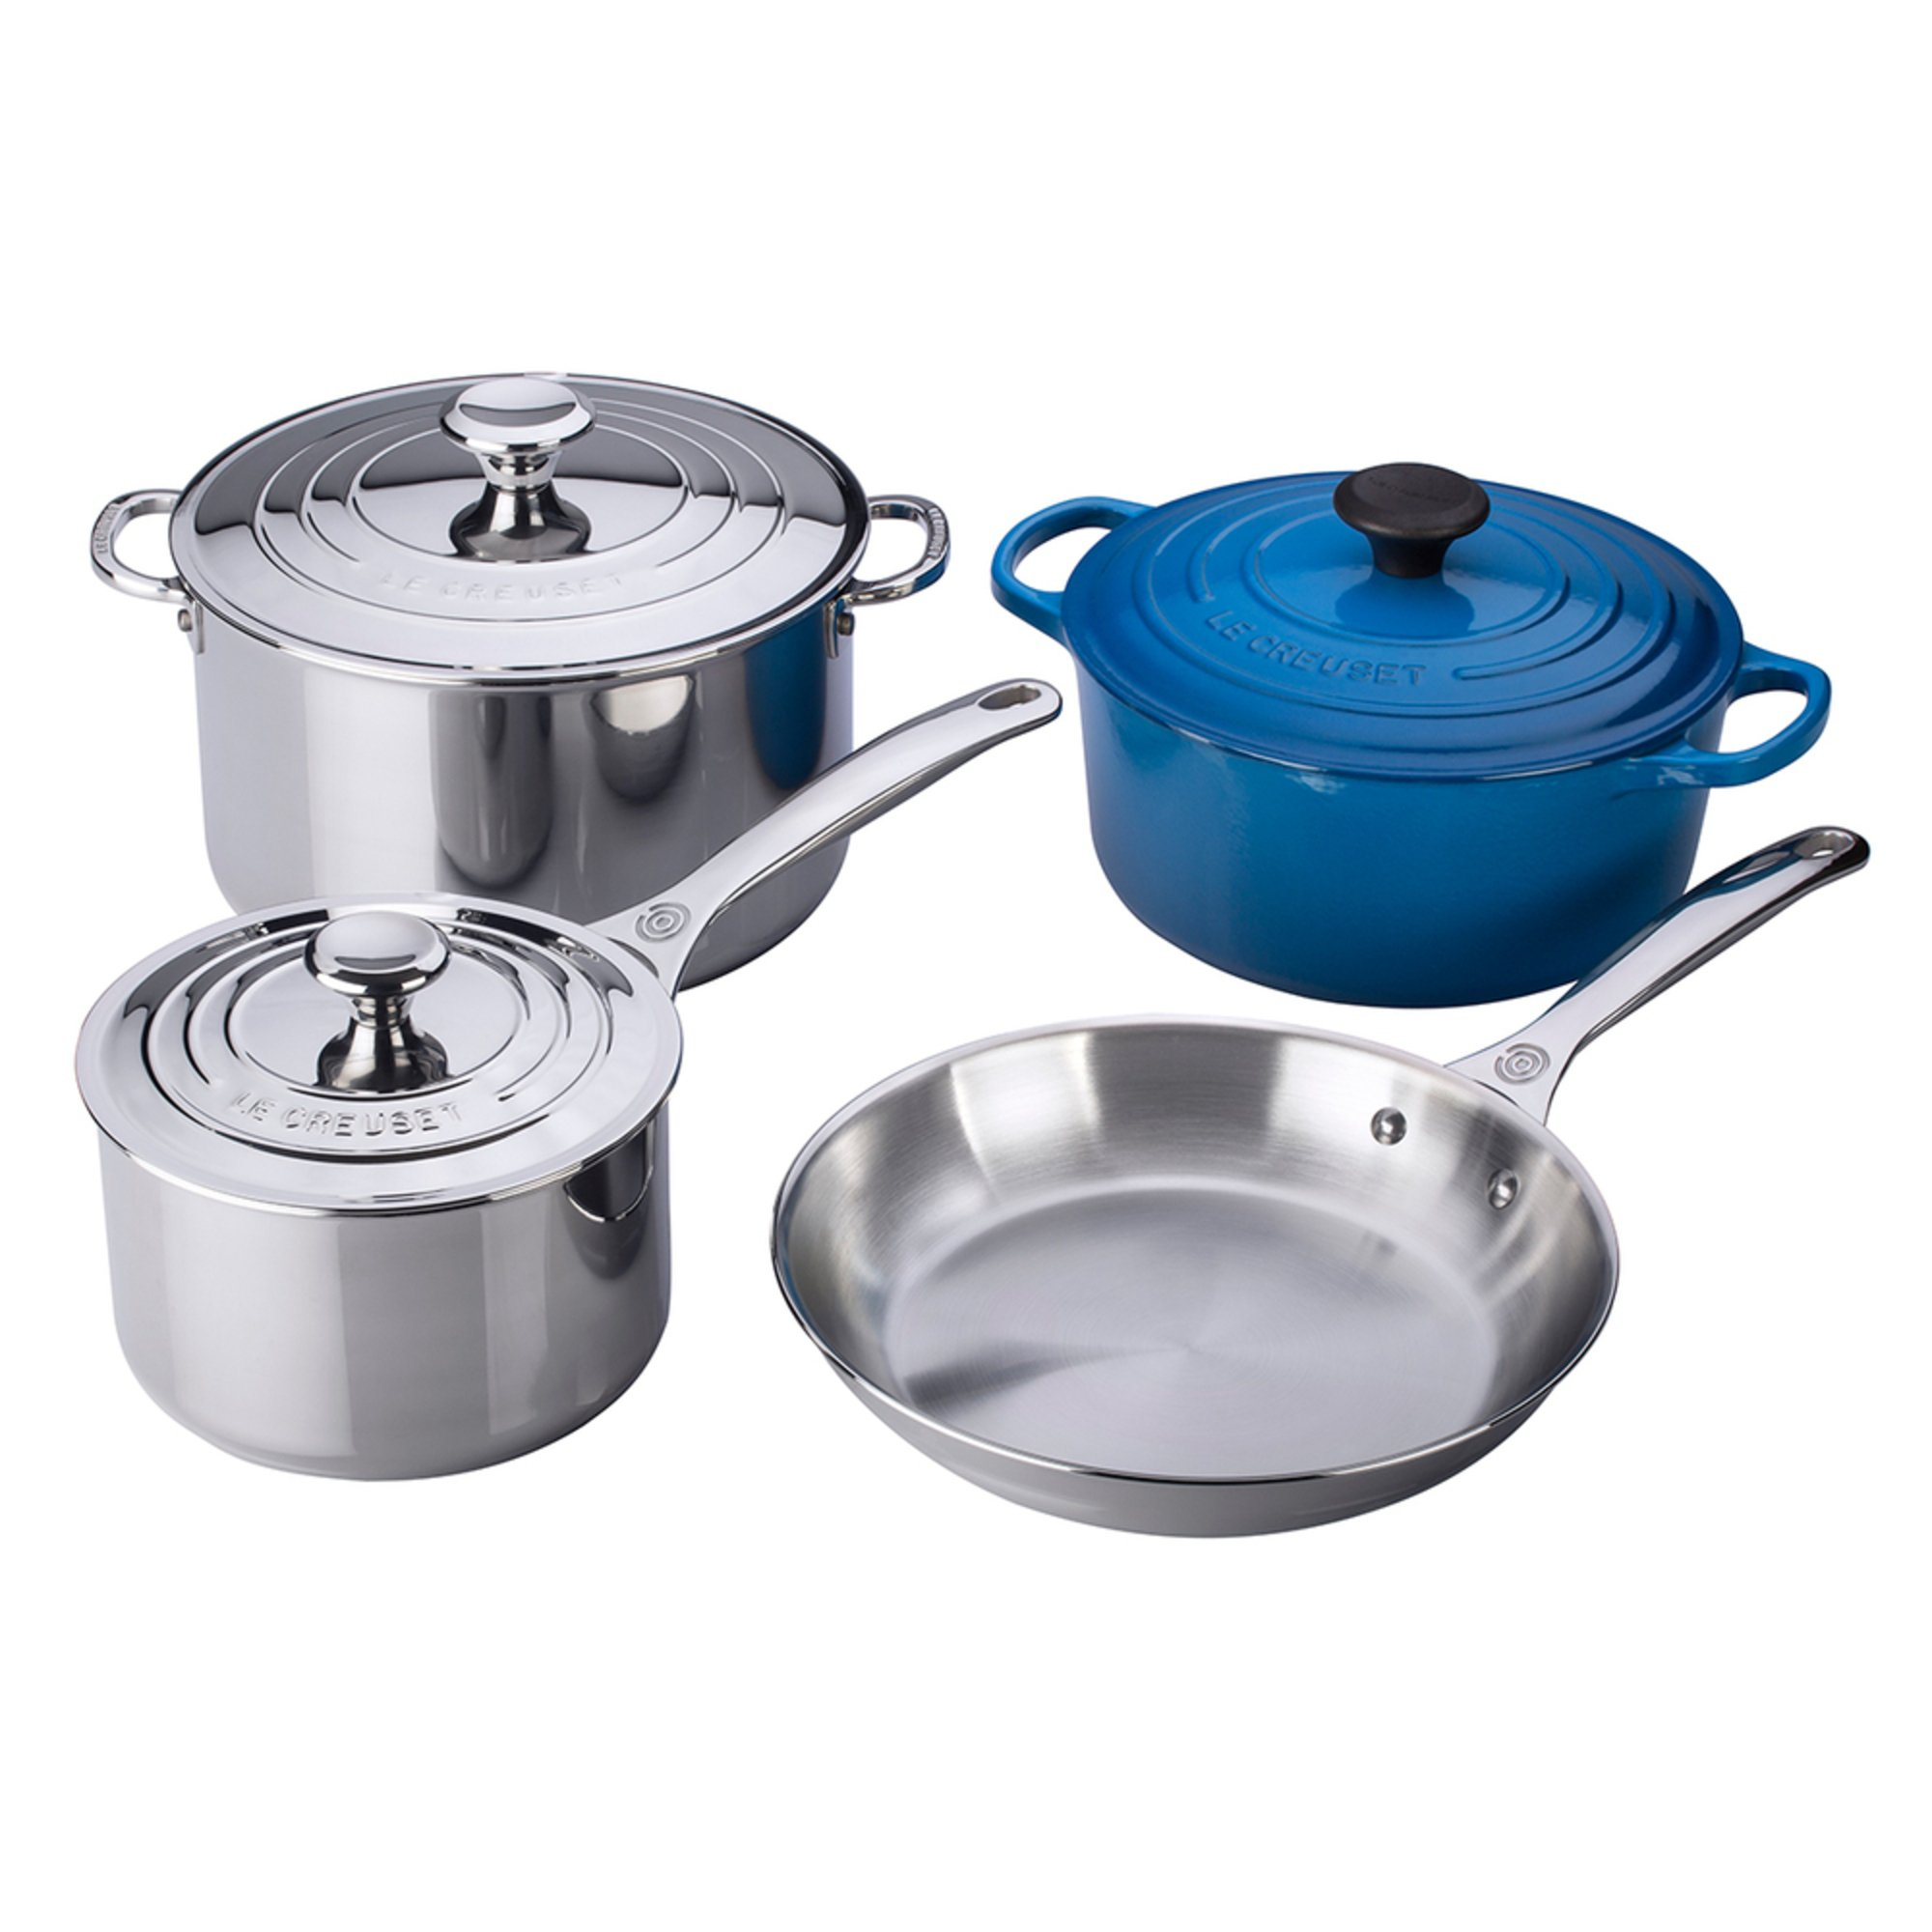 Cookware | Shop Your Navy Exchange - Official Site